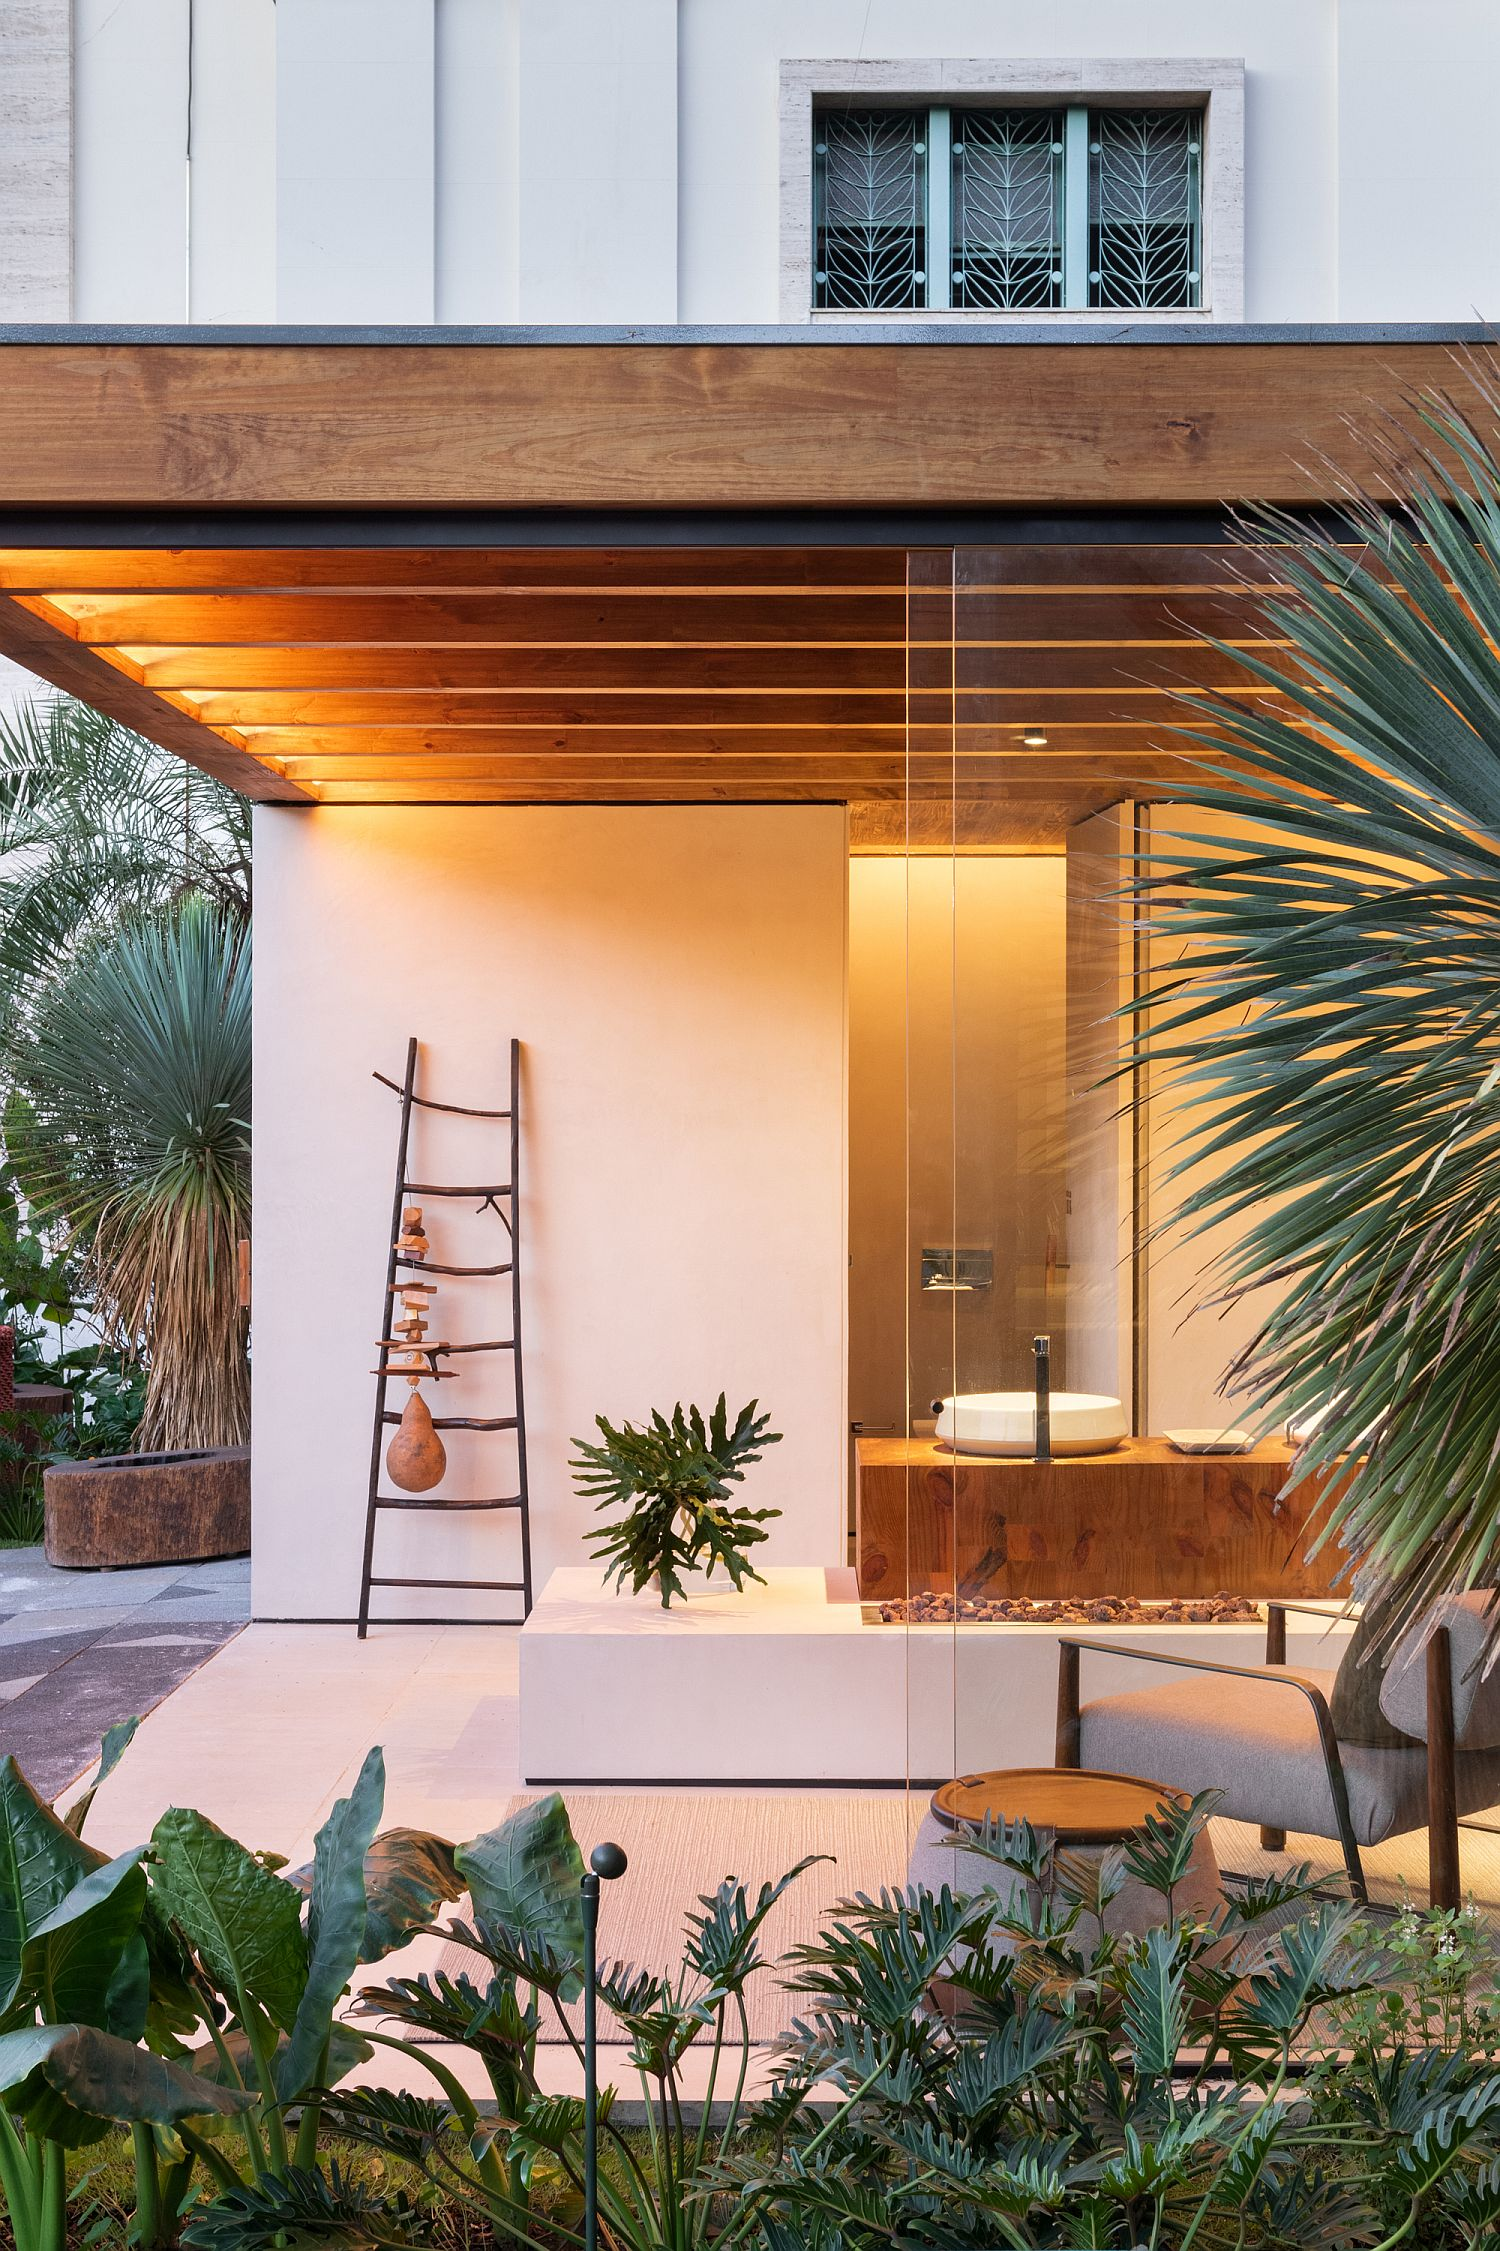 Pergola like structure of the terrace extends the living area into the garden